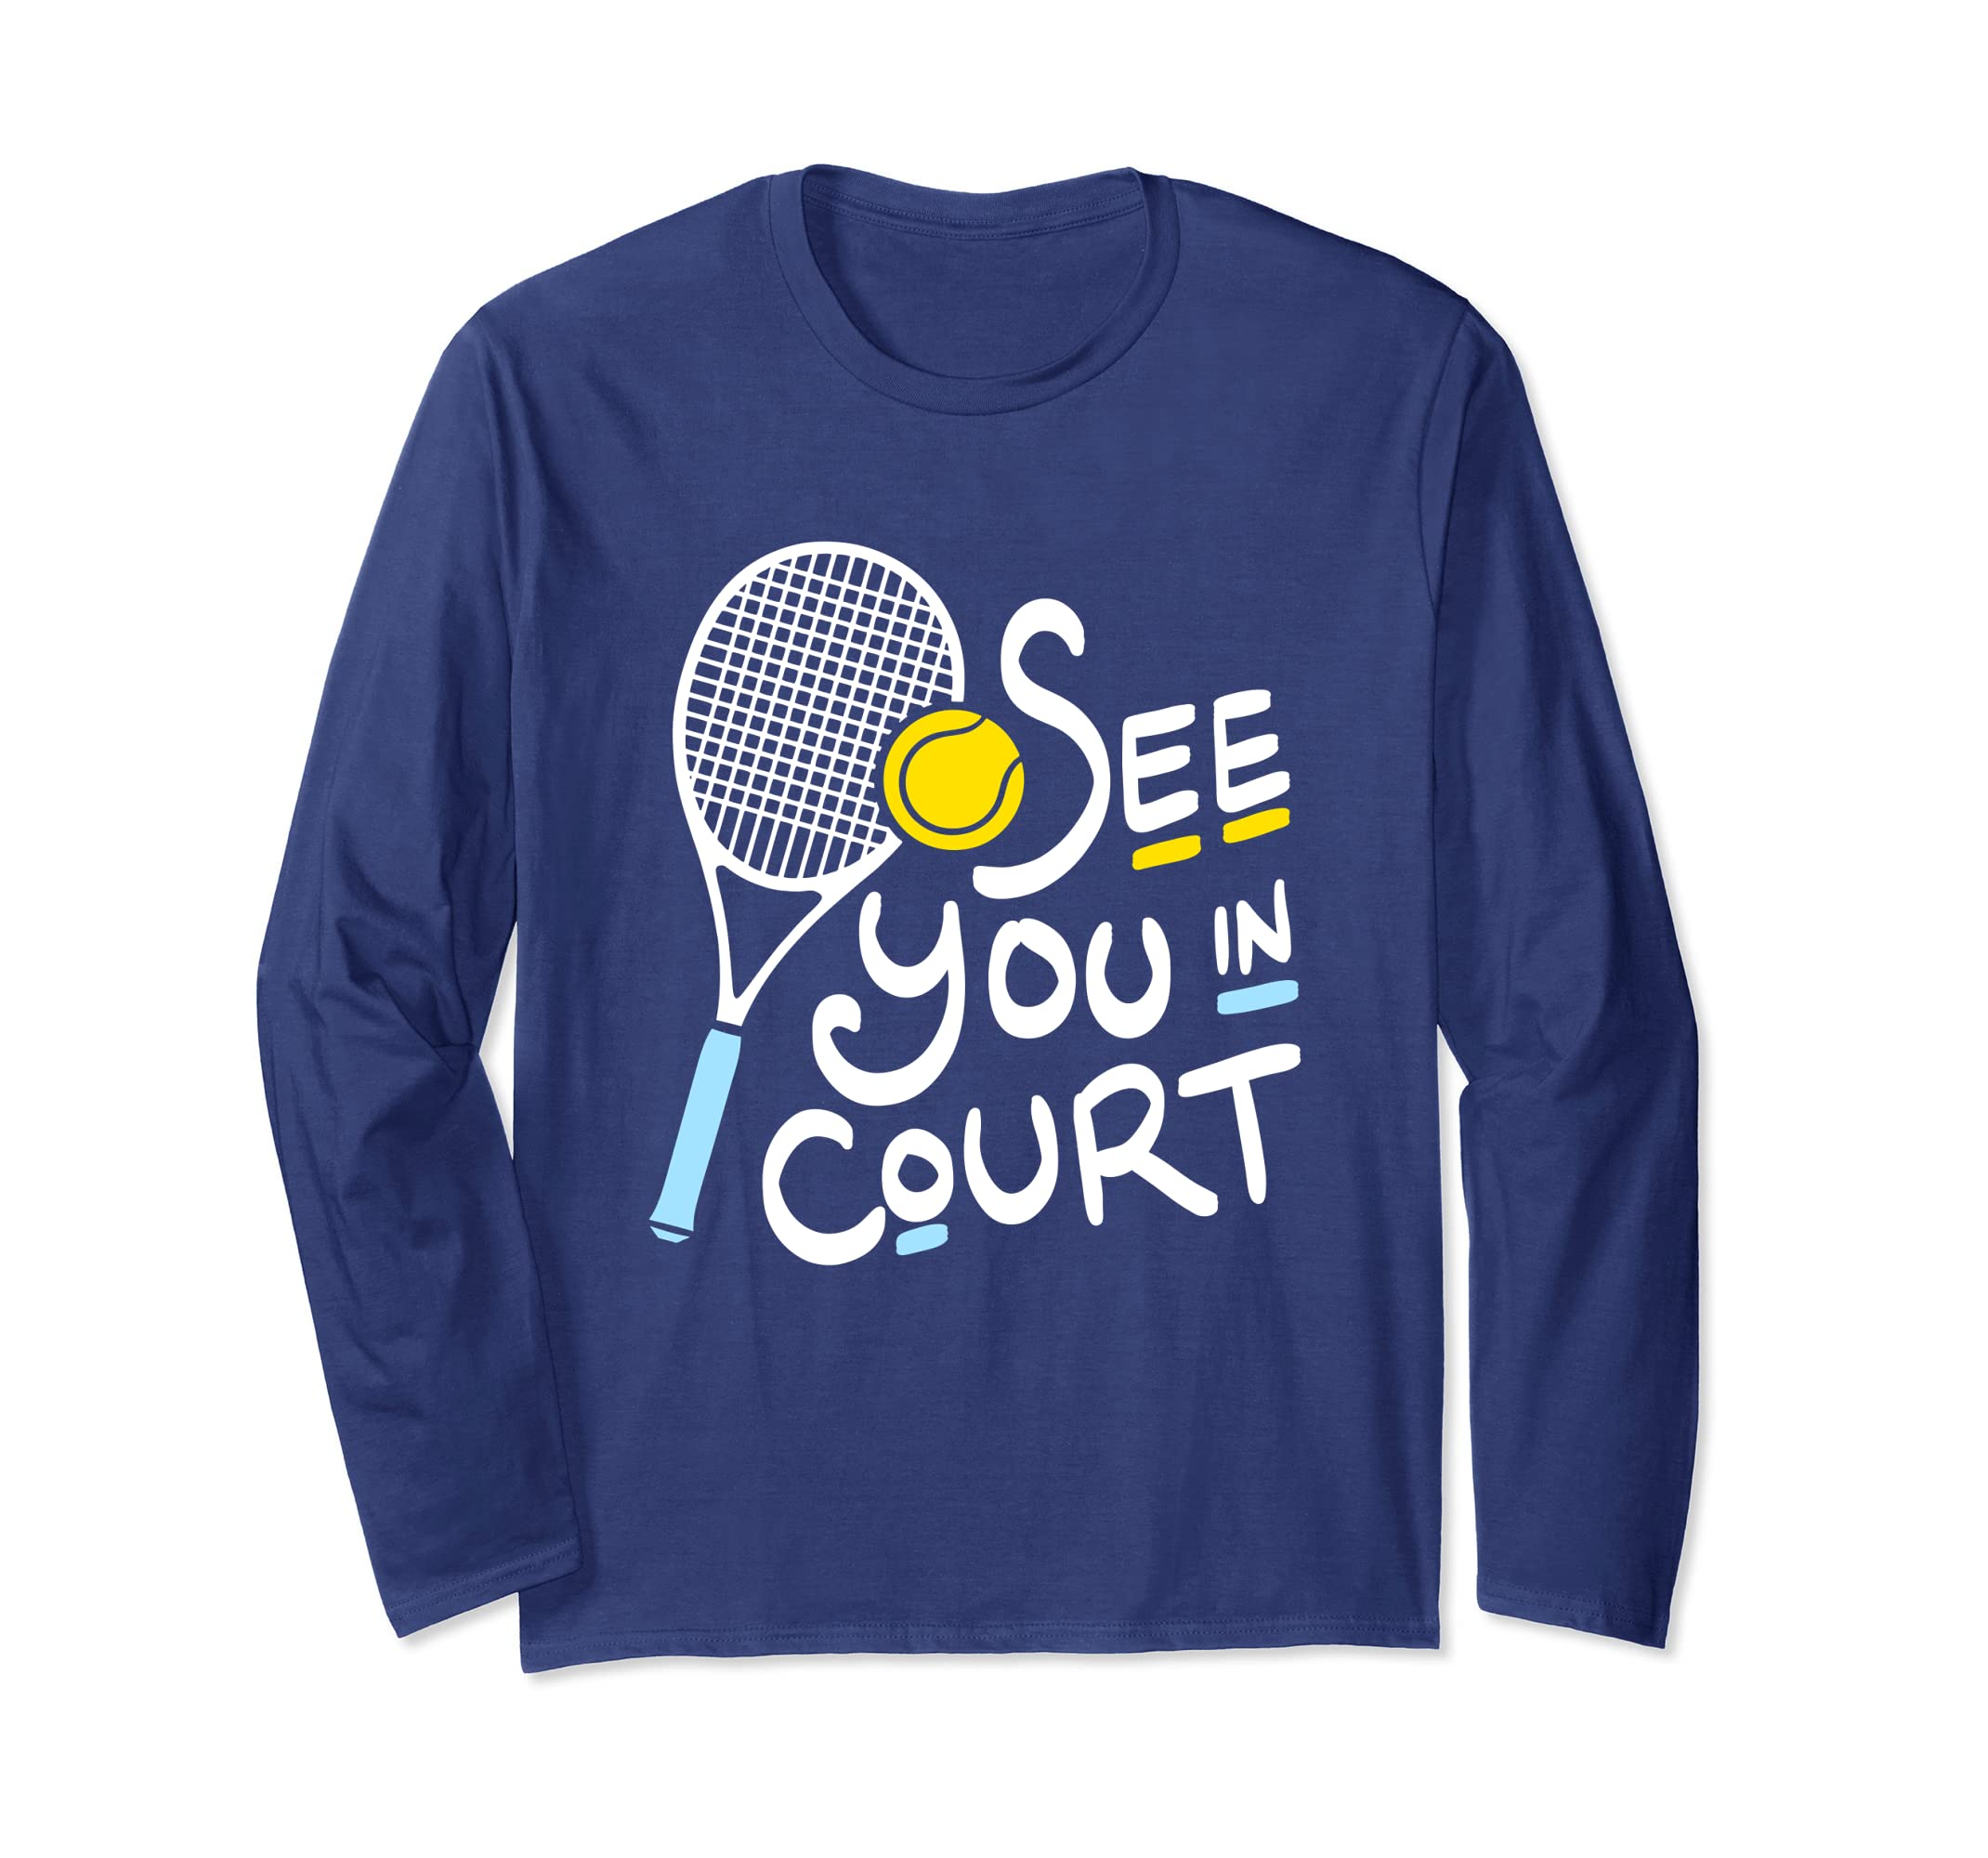 Amazon.com: See You in Court funny tennis and lawyer tee ...